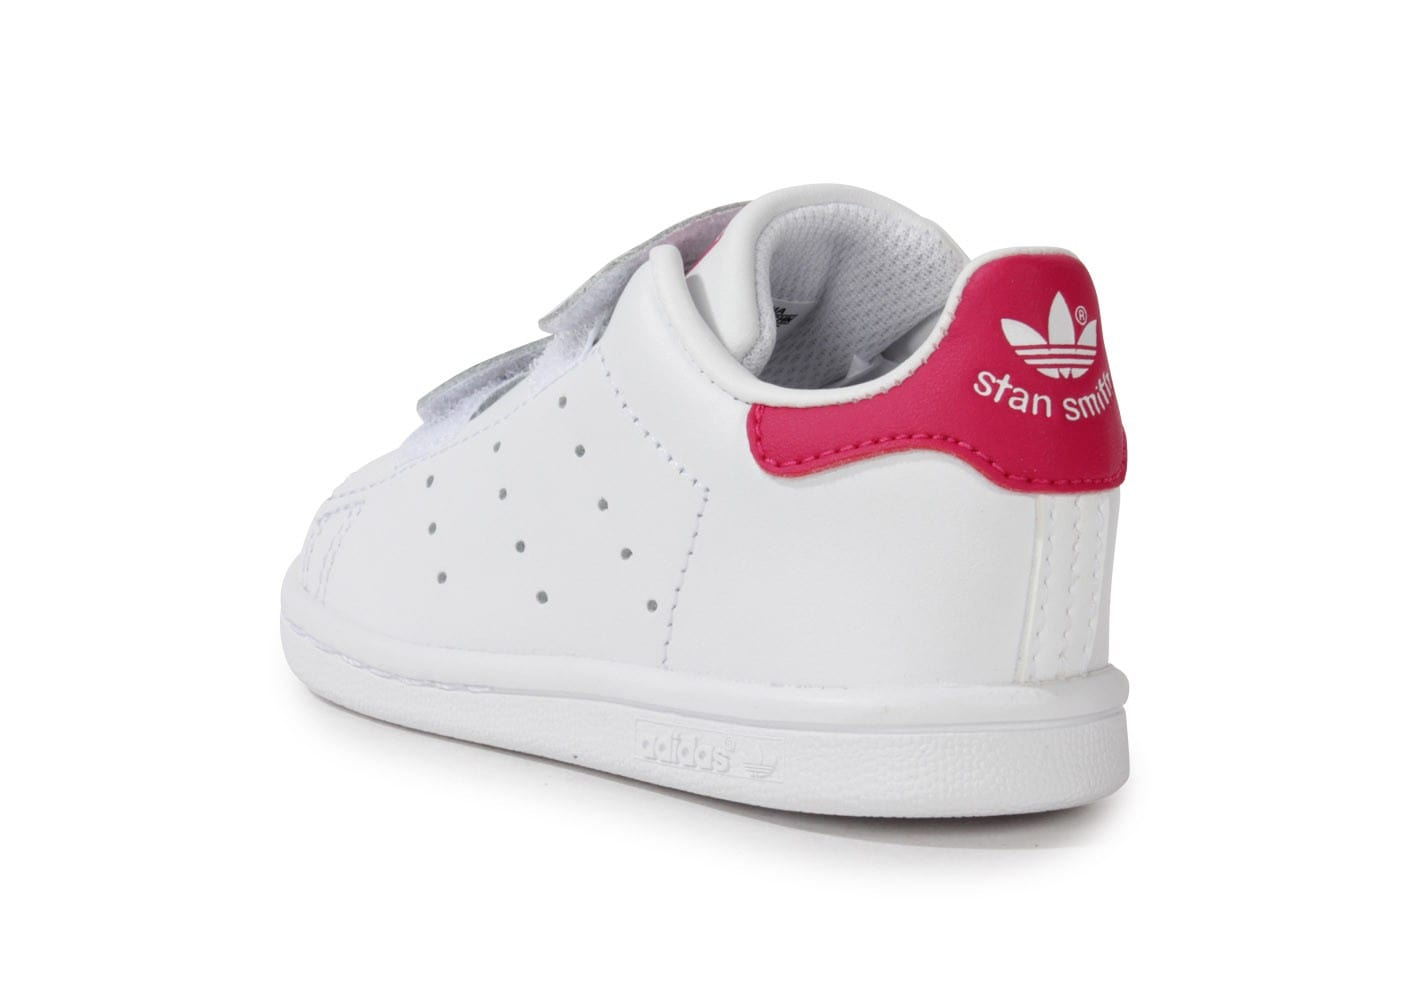 adidas stan smith blanche et rose b b chaussures adidas. Black Bedroom Furniture Sets. Home Design Ideas